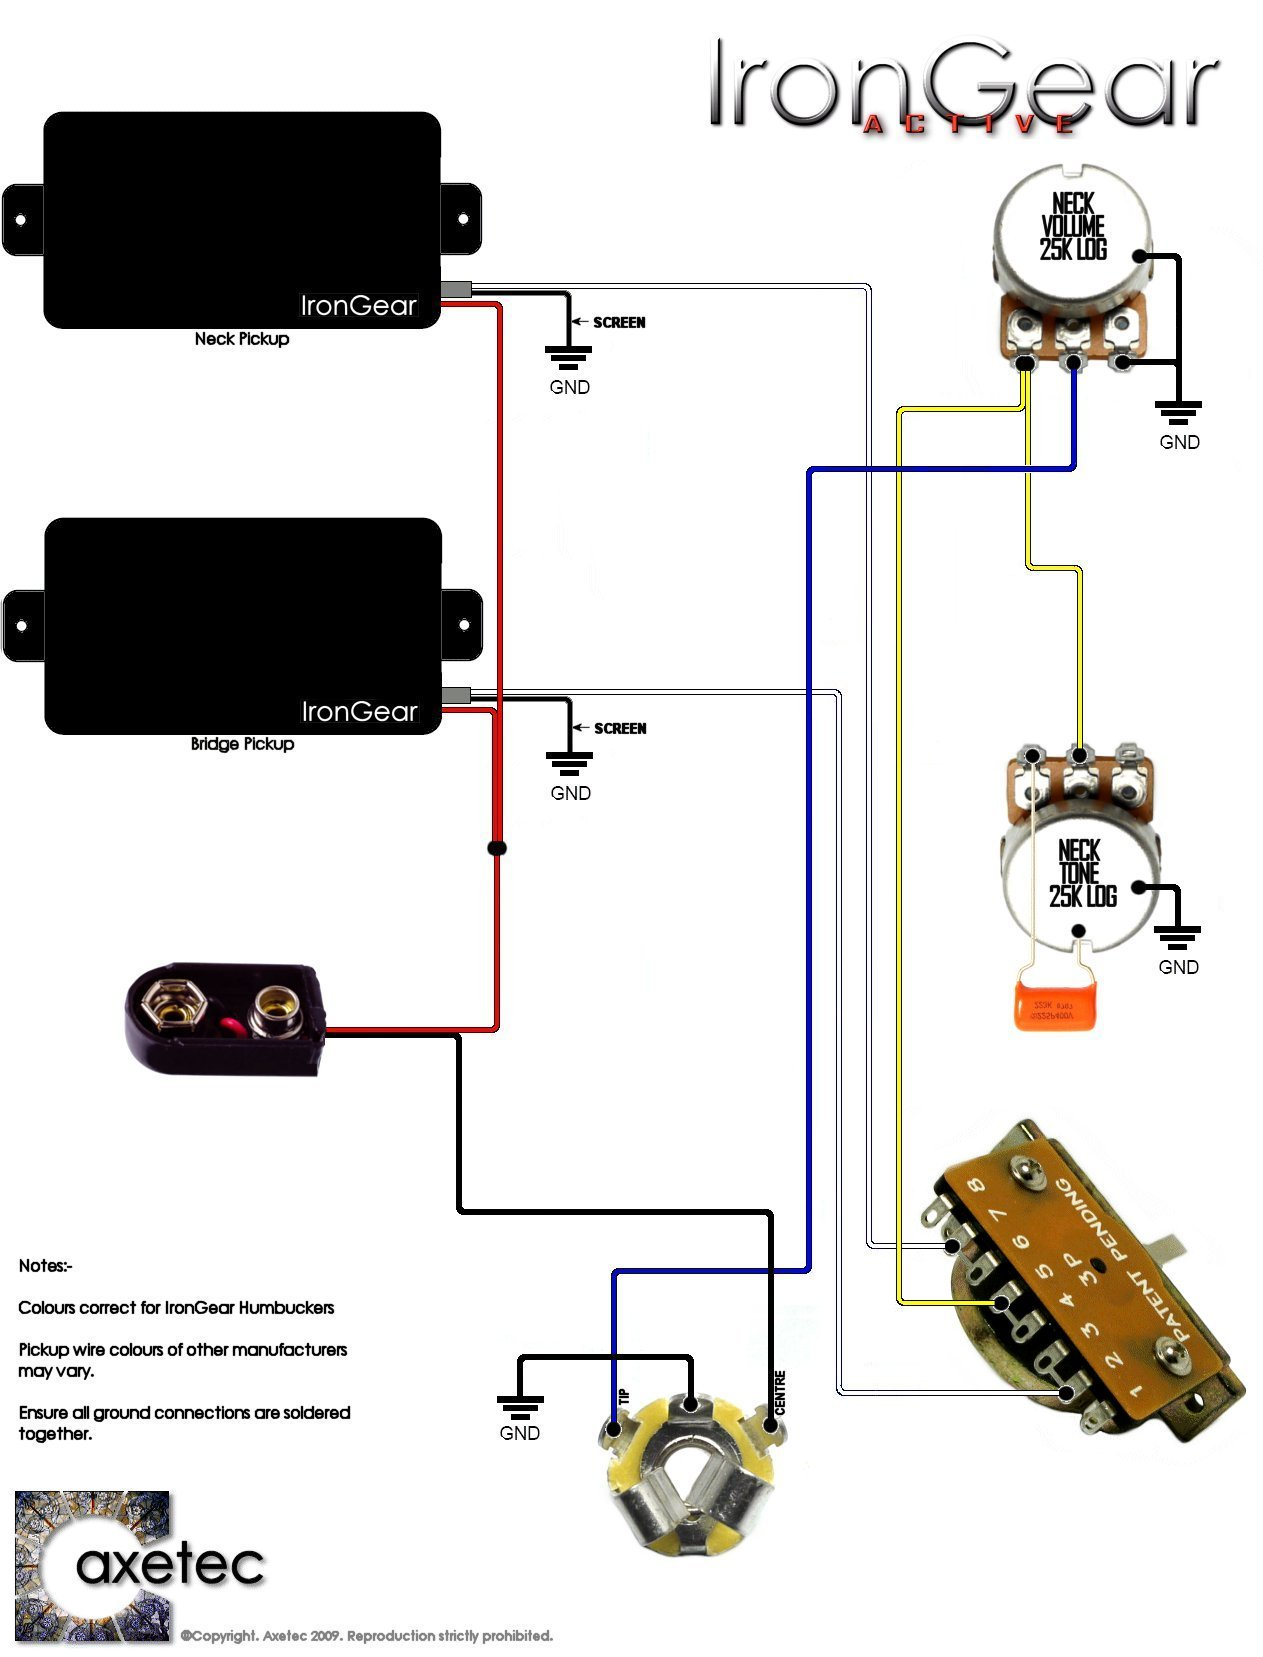 active pickup wiring diagram 17 smo zionsnowboards de \u2022active pickup wiring wiring diagram library rh 8 bmh stenimex de active pickup wiring diagram active pickup wiring diagram bass